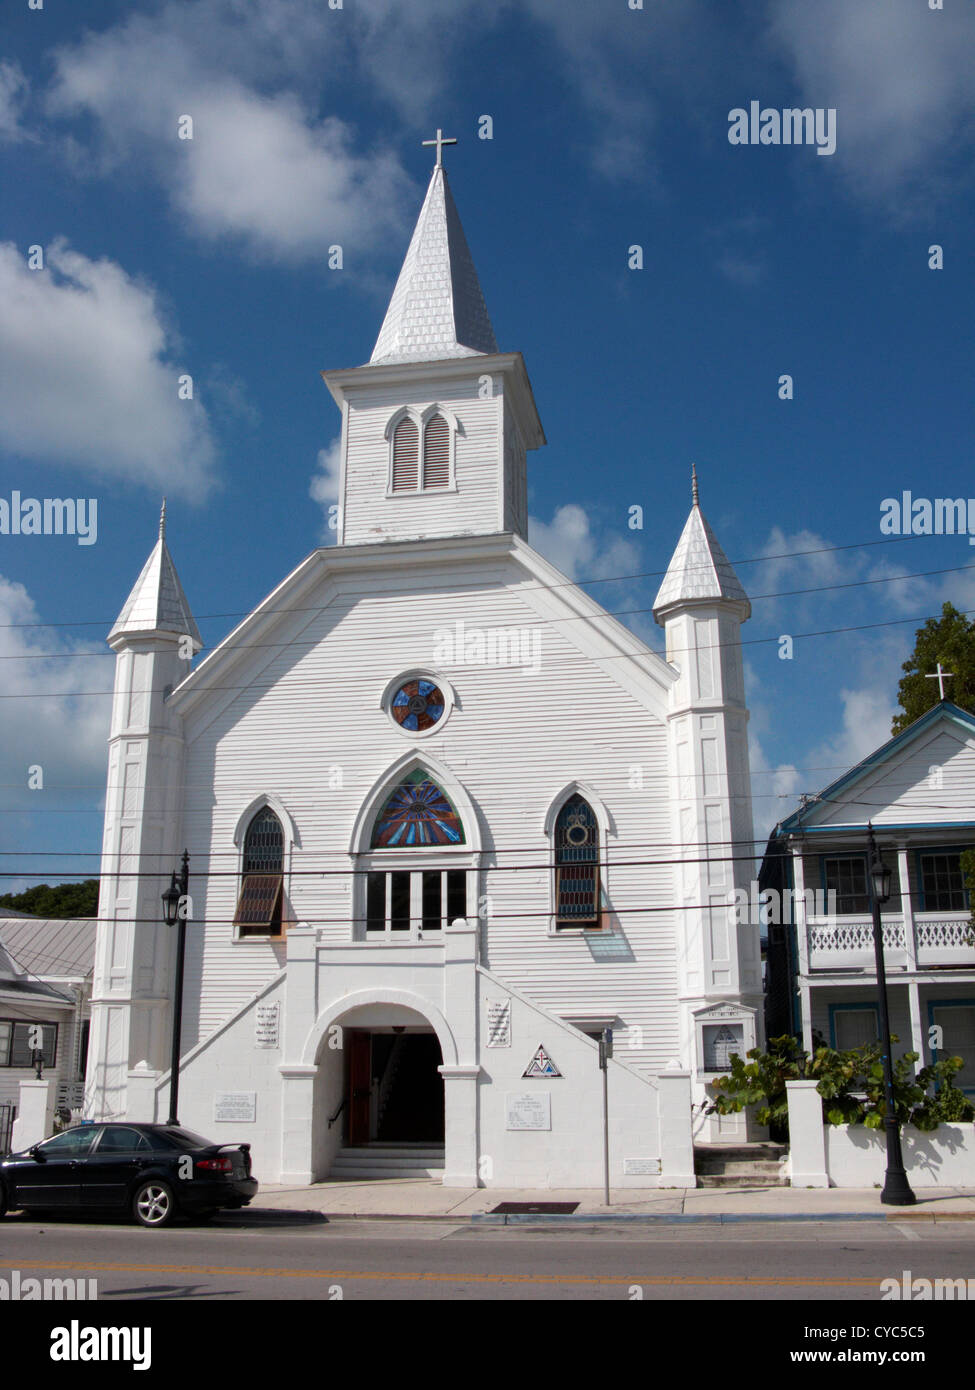 cornish memorial ame african methodist episcopal zion church key west florida usa - Stock Image